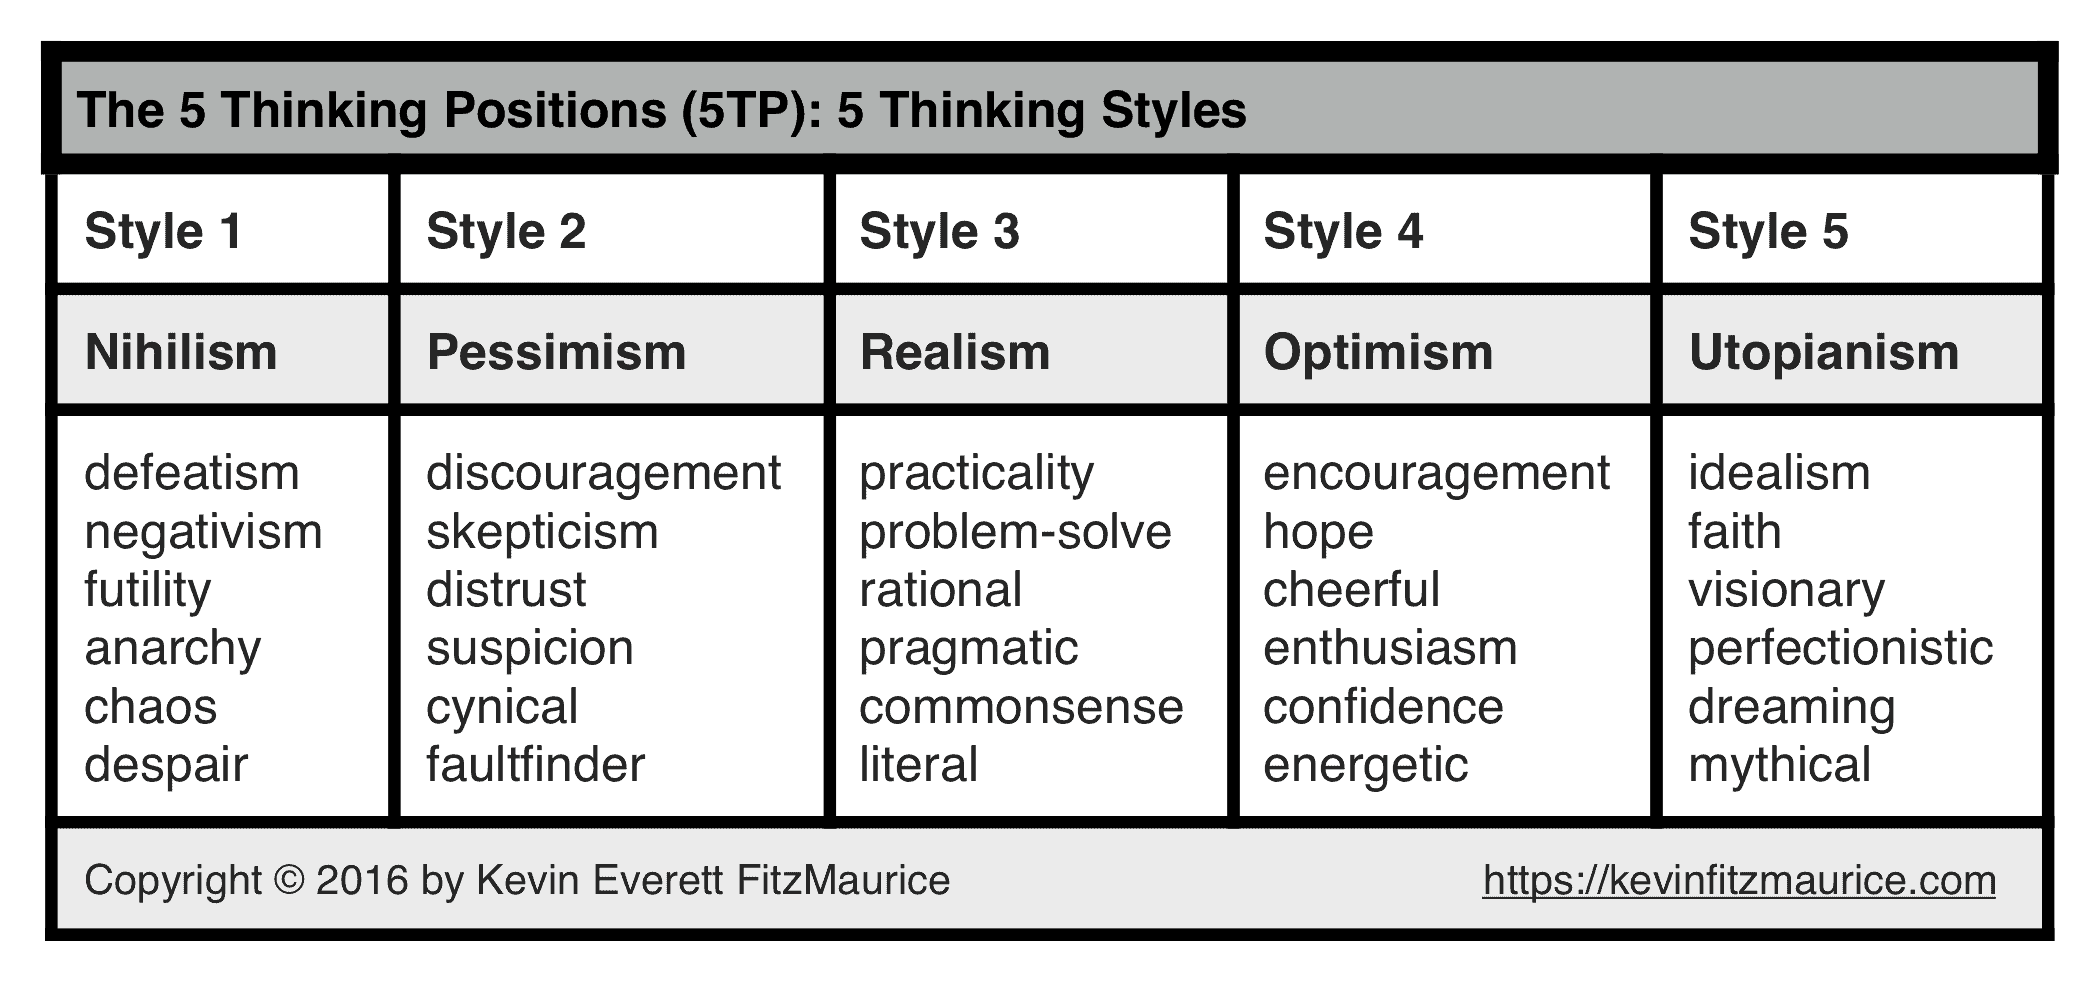 5 Thinking Positions & Styles